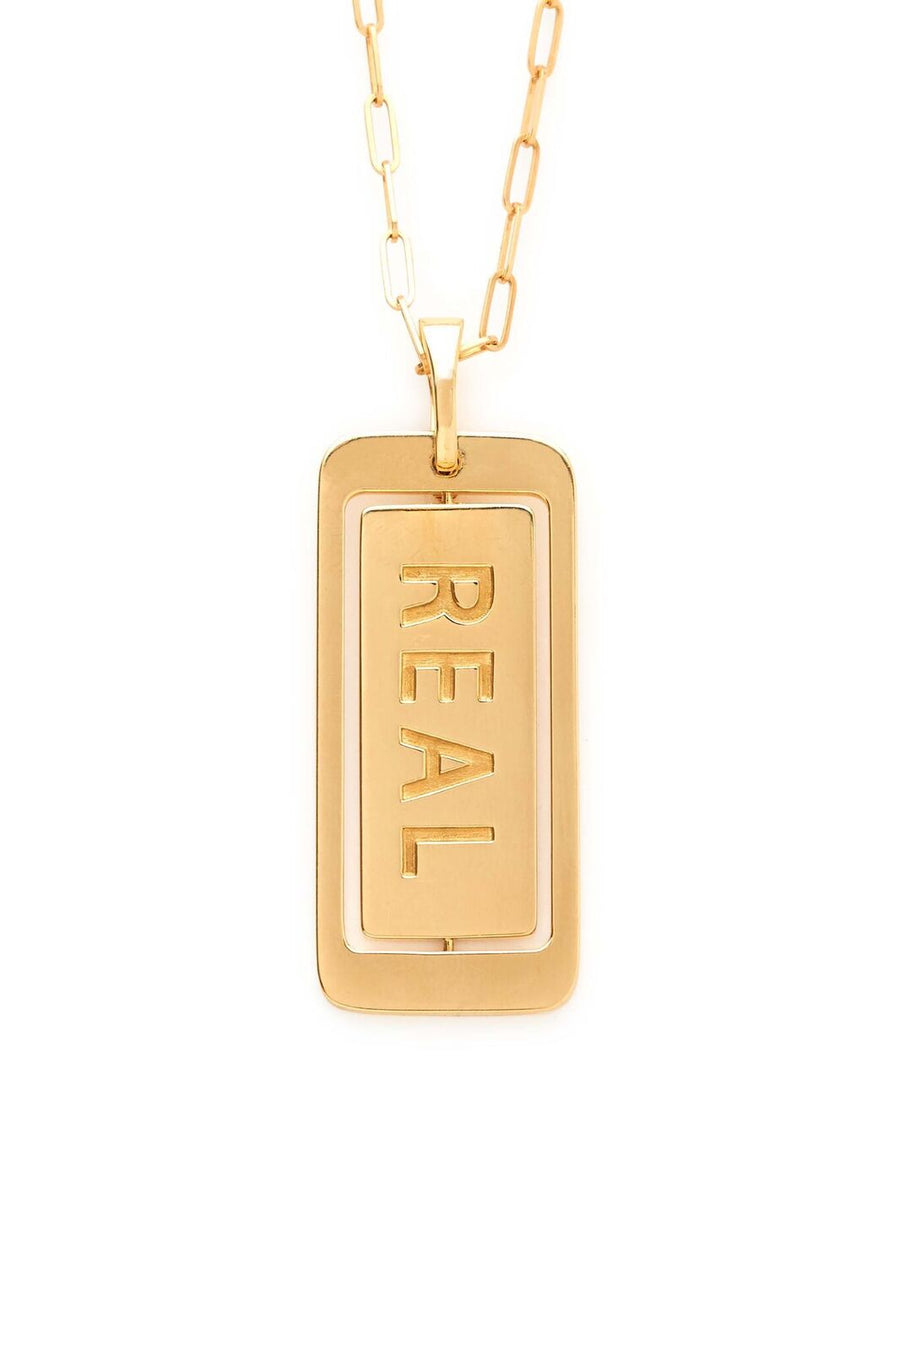 18K Gold Real/Love Engraved Pendant Necklace